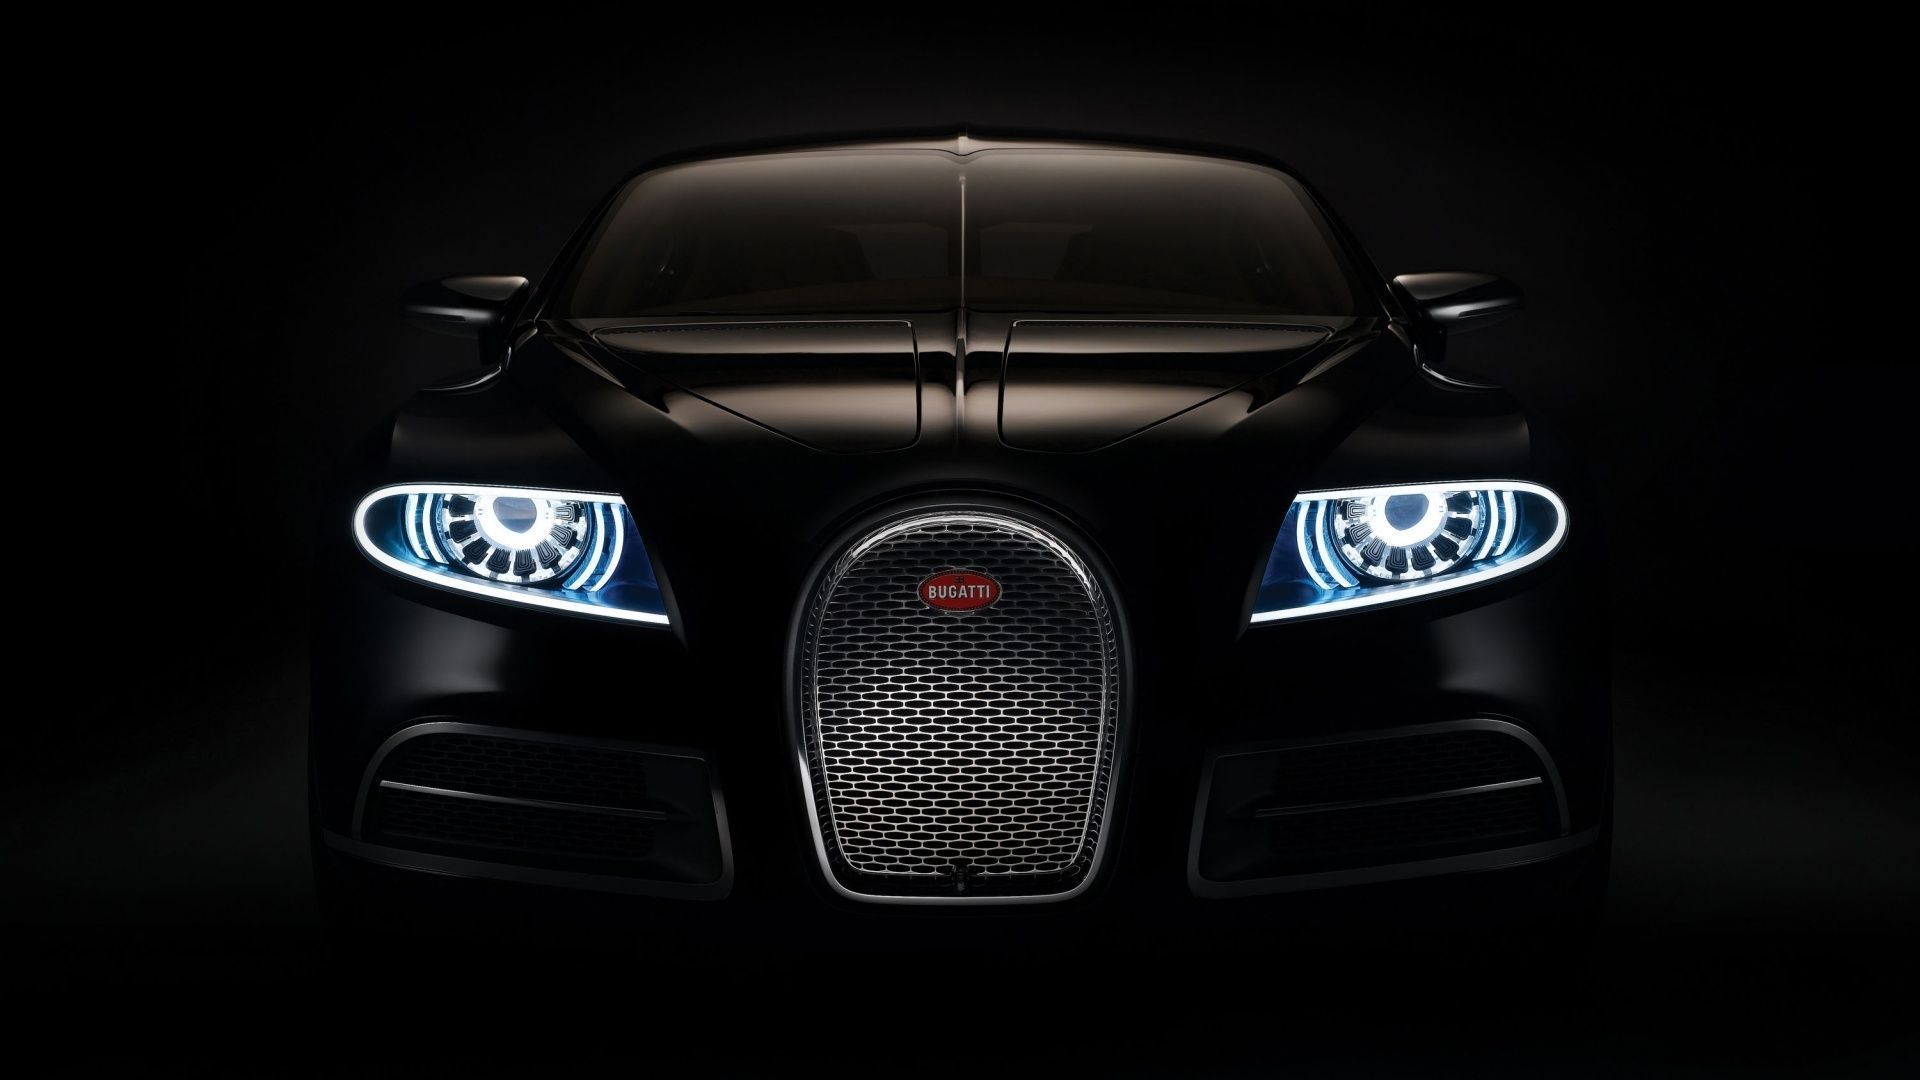 Captivating Charmant Bugatti Galibier Concept May Become A Real Car AllAutoExperts